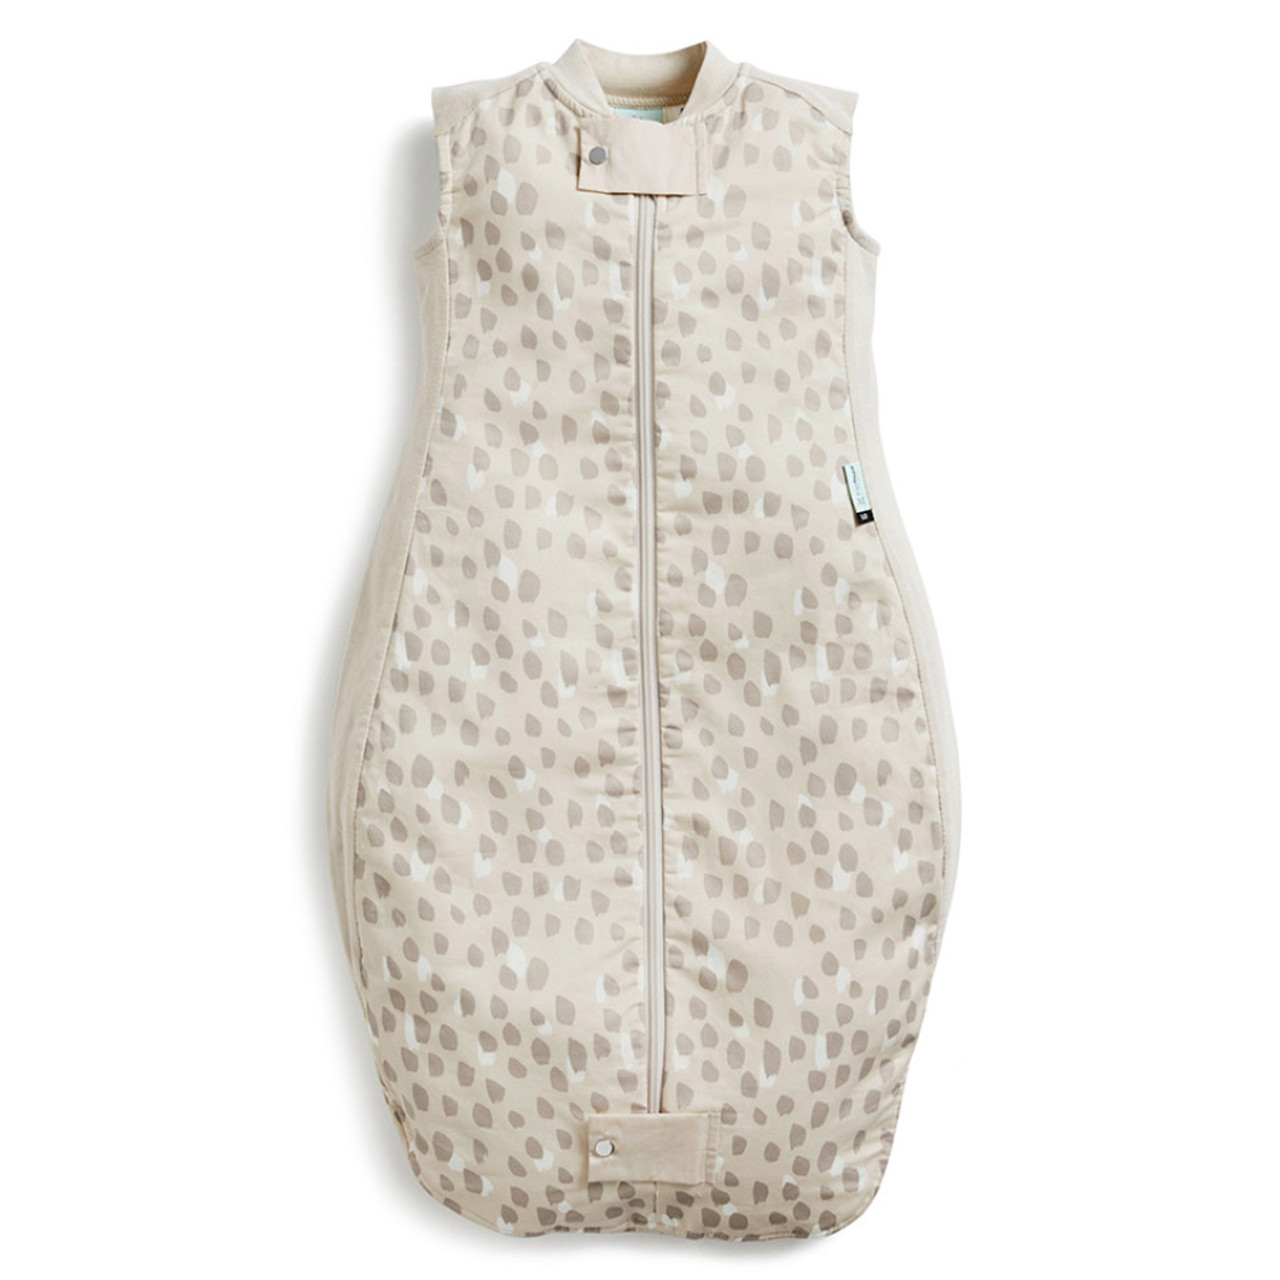 ergoPouch Sheeting Sleeping Bag 0.3 tog 2-12 Months - FAWN